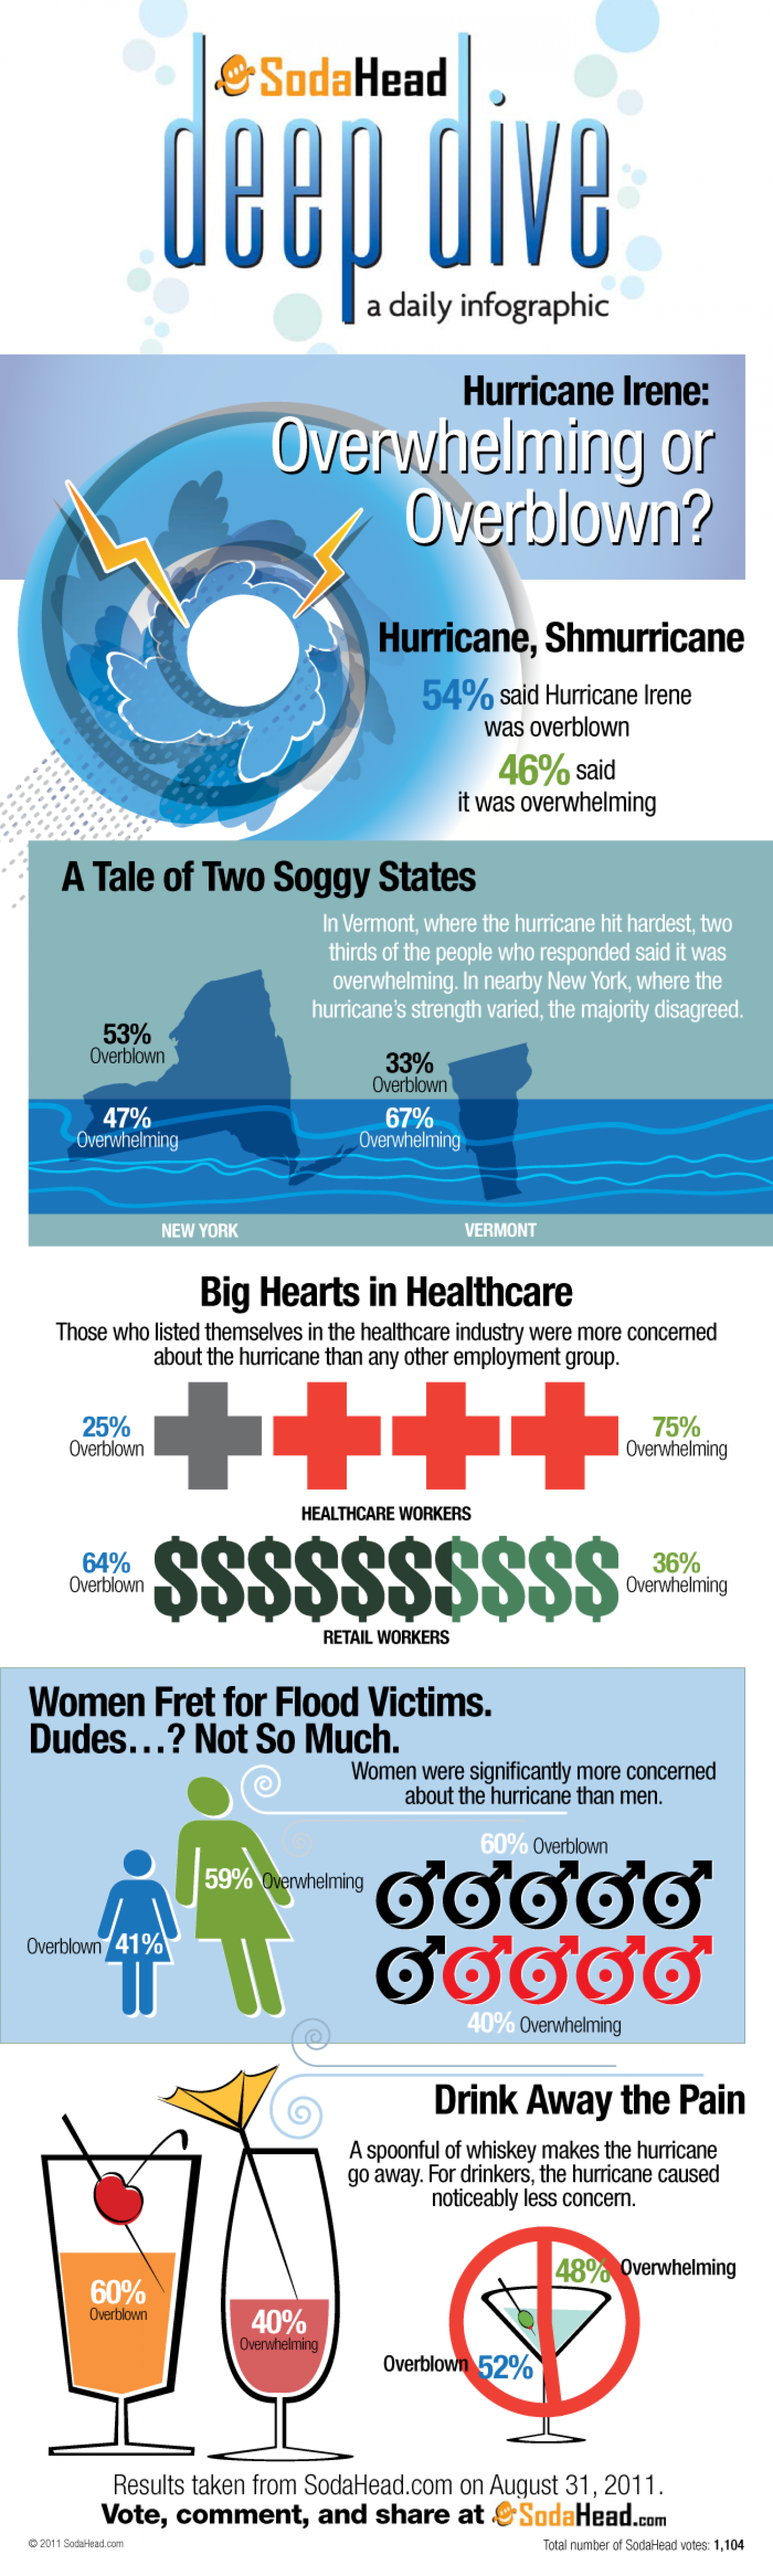 Public Opinion Says Hurricane Irene Was Overblown  Infographic